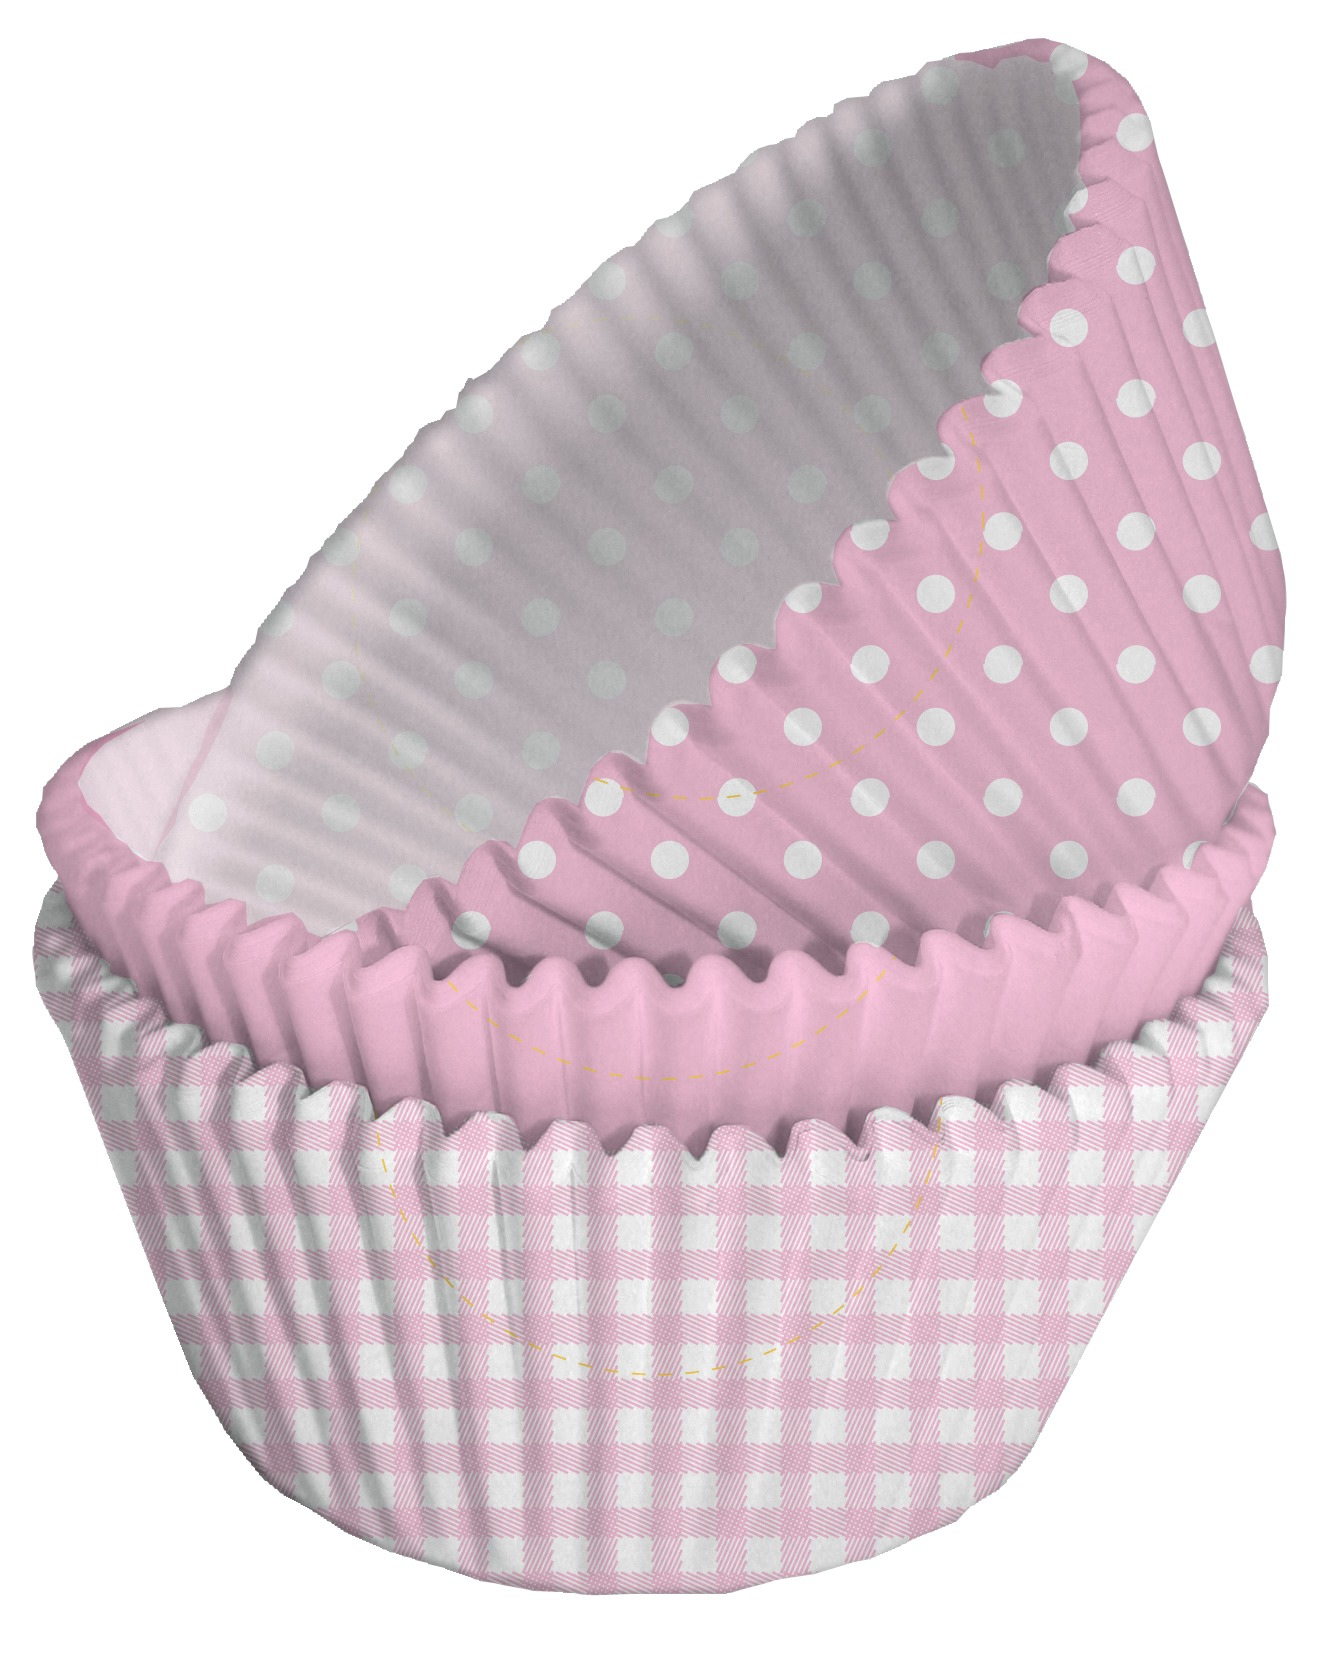 http://www.vegaooparty.com/images/rep_articles/gra/75/75-moules-cupcake-rose-et-blanc_215304.jpg